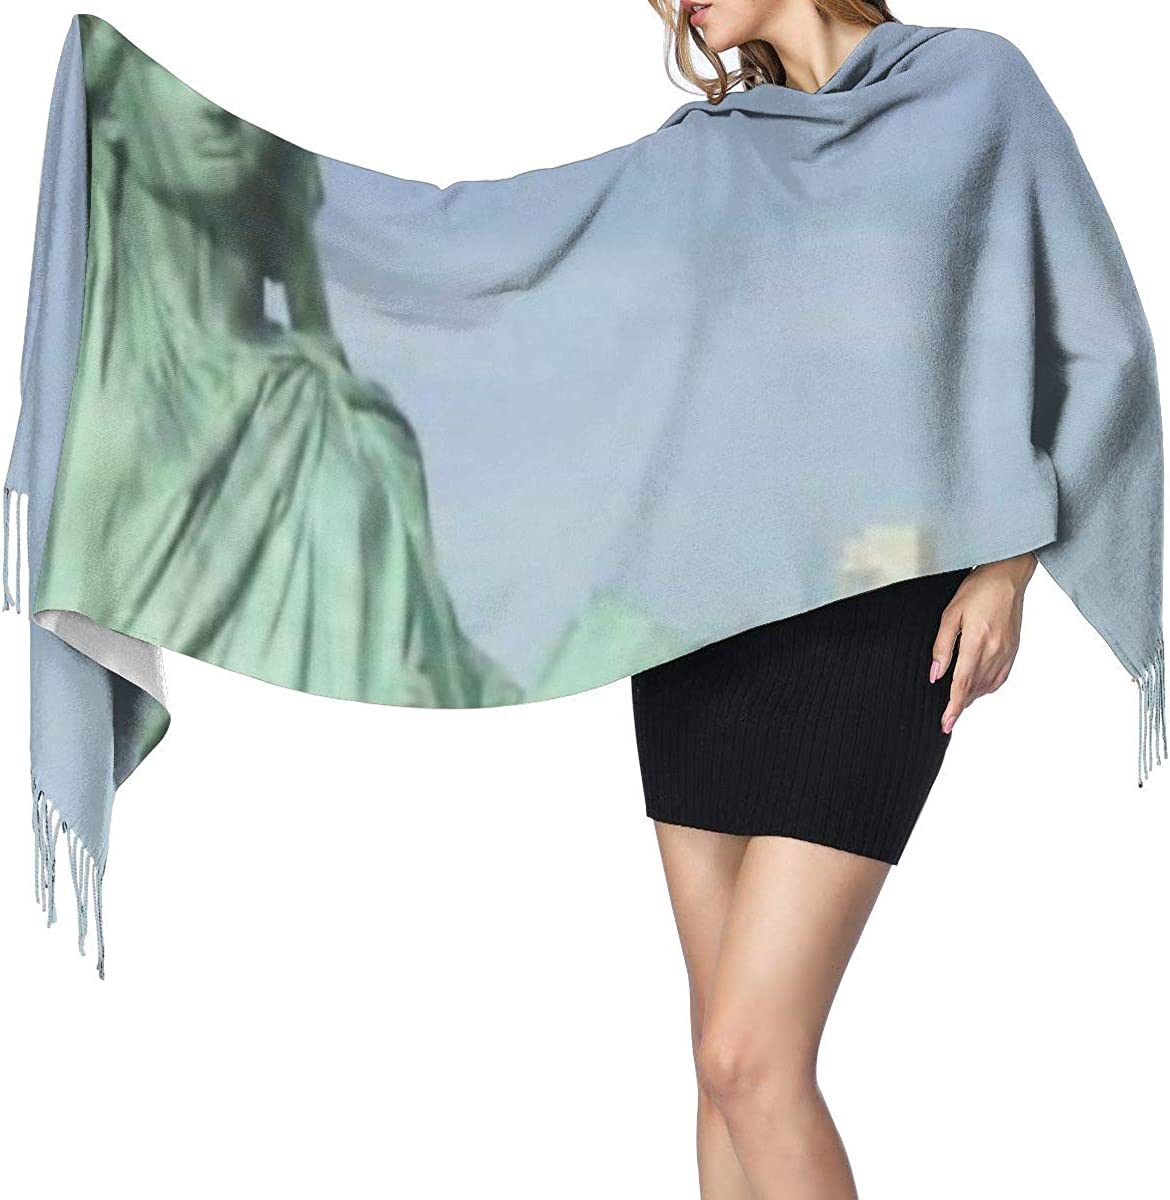 Soft Cashmere Scarf For Women Usa Statue Of Liberty Fashion Lady Shawls,Comfortable Warm Winter Scarfs